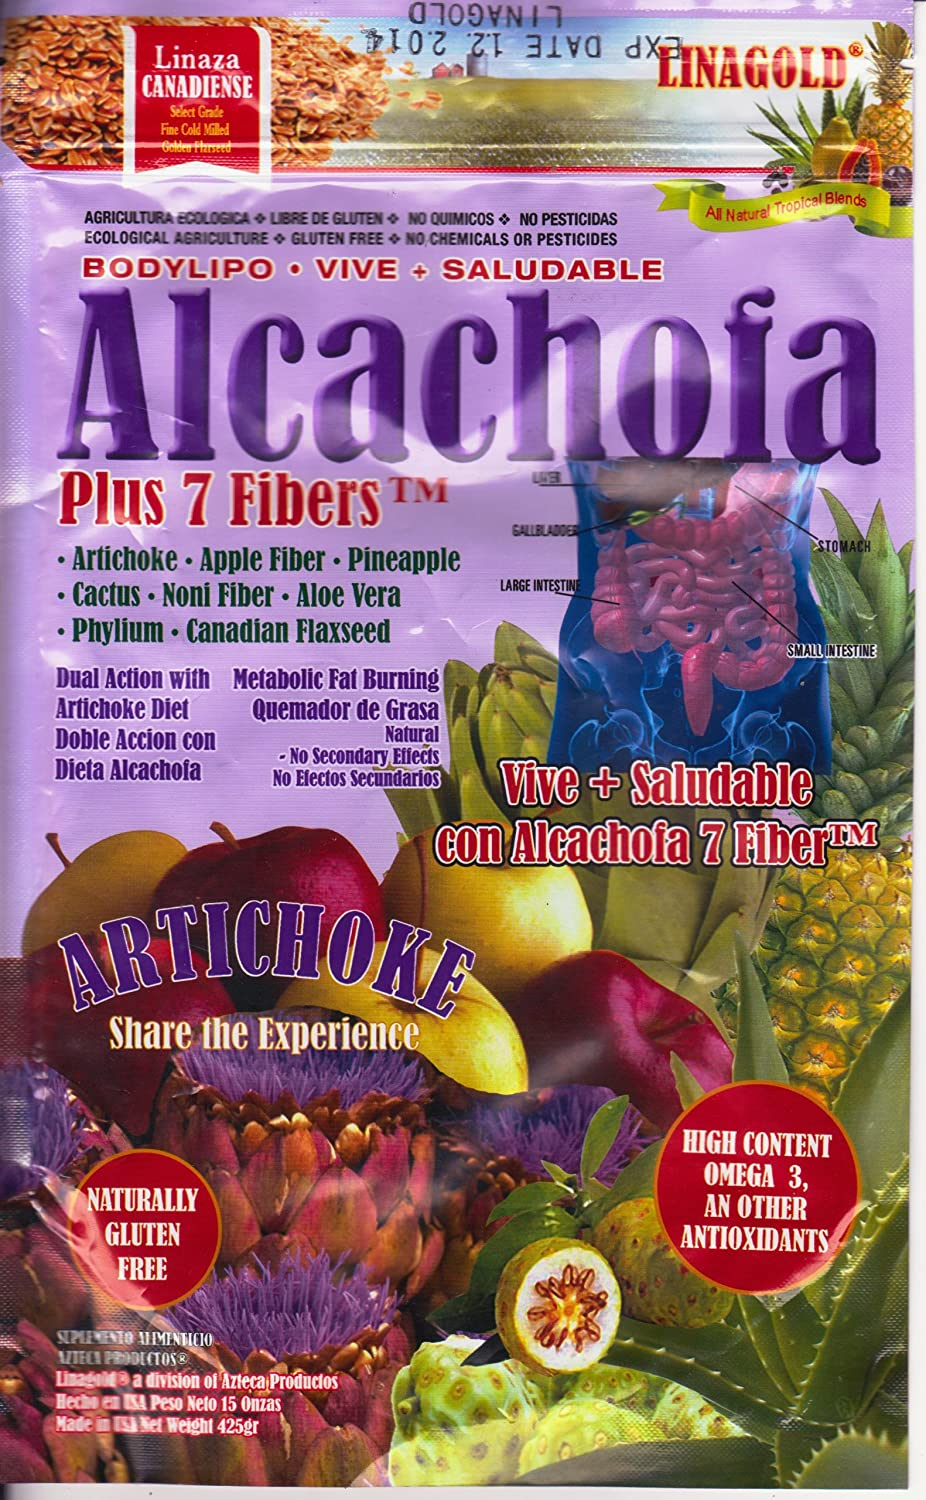 Amazon.com: Alcachofa Artichoke & Flaxseed Plus 7 Fibers Weight Loss Powder Blend (15oz): Health & Personal Care